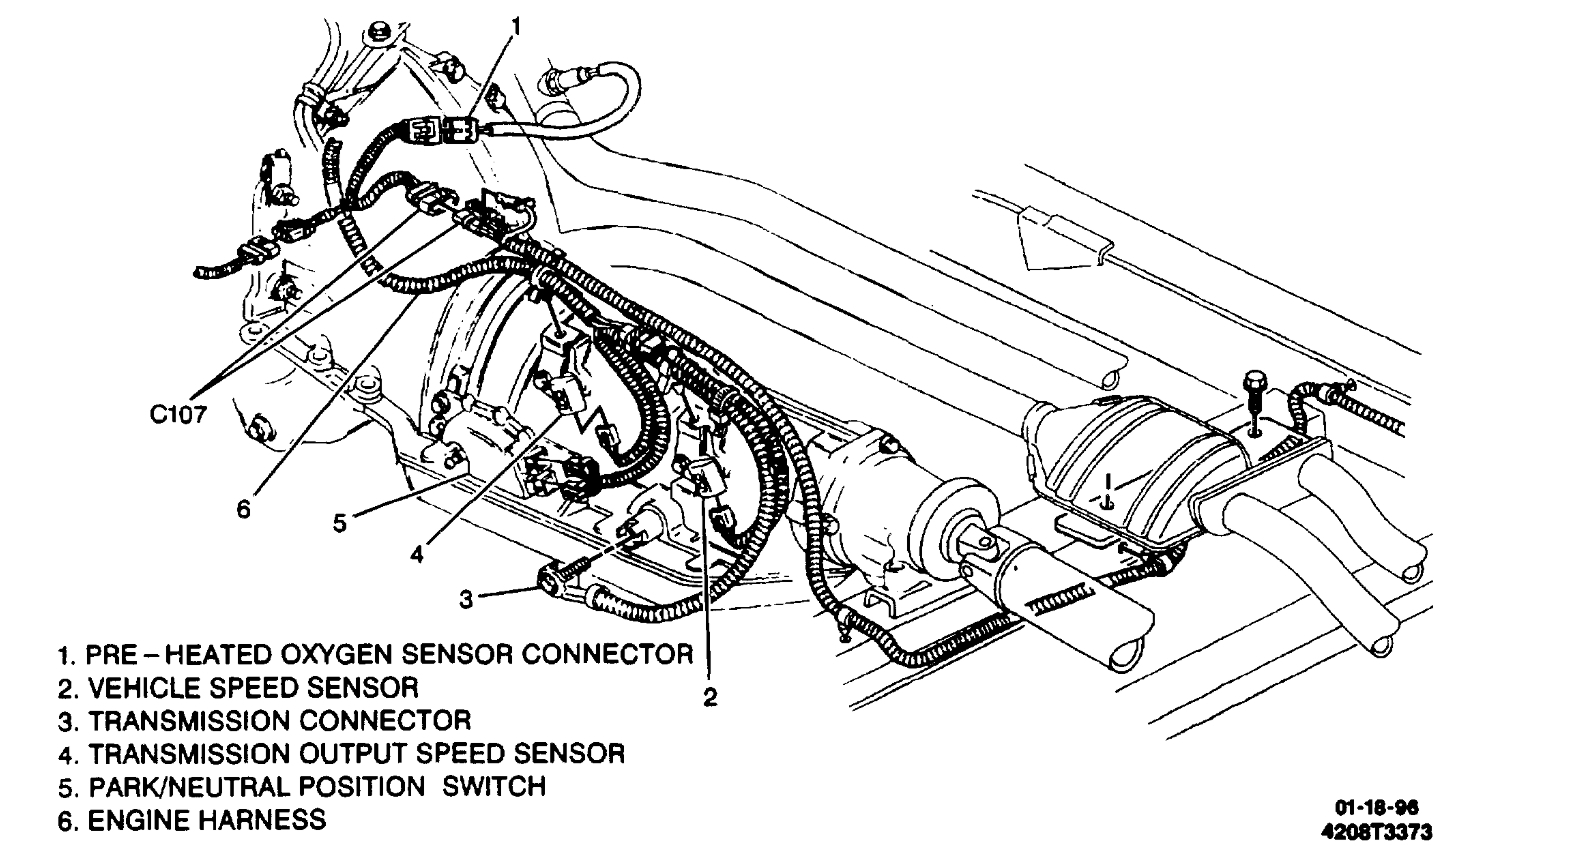 Vehicle Speed Sensor Where Is The Vehicle Speed Sensor